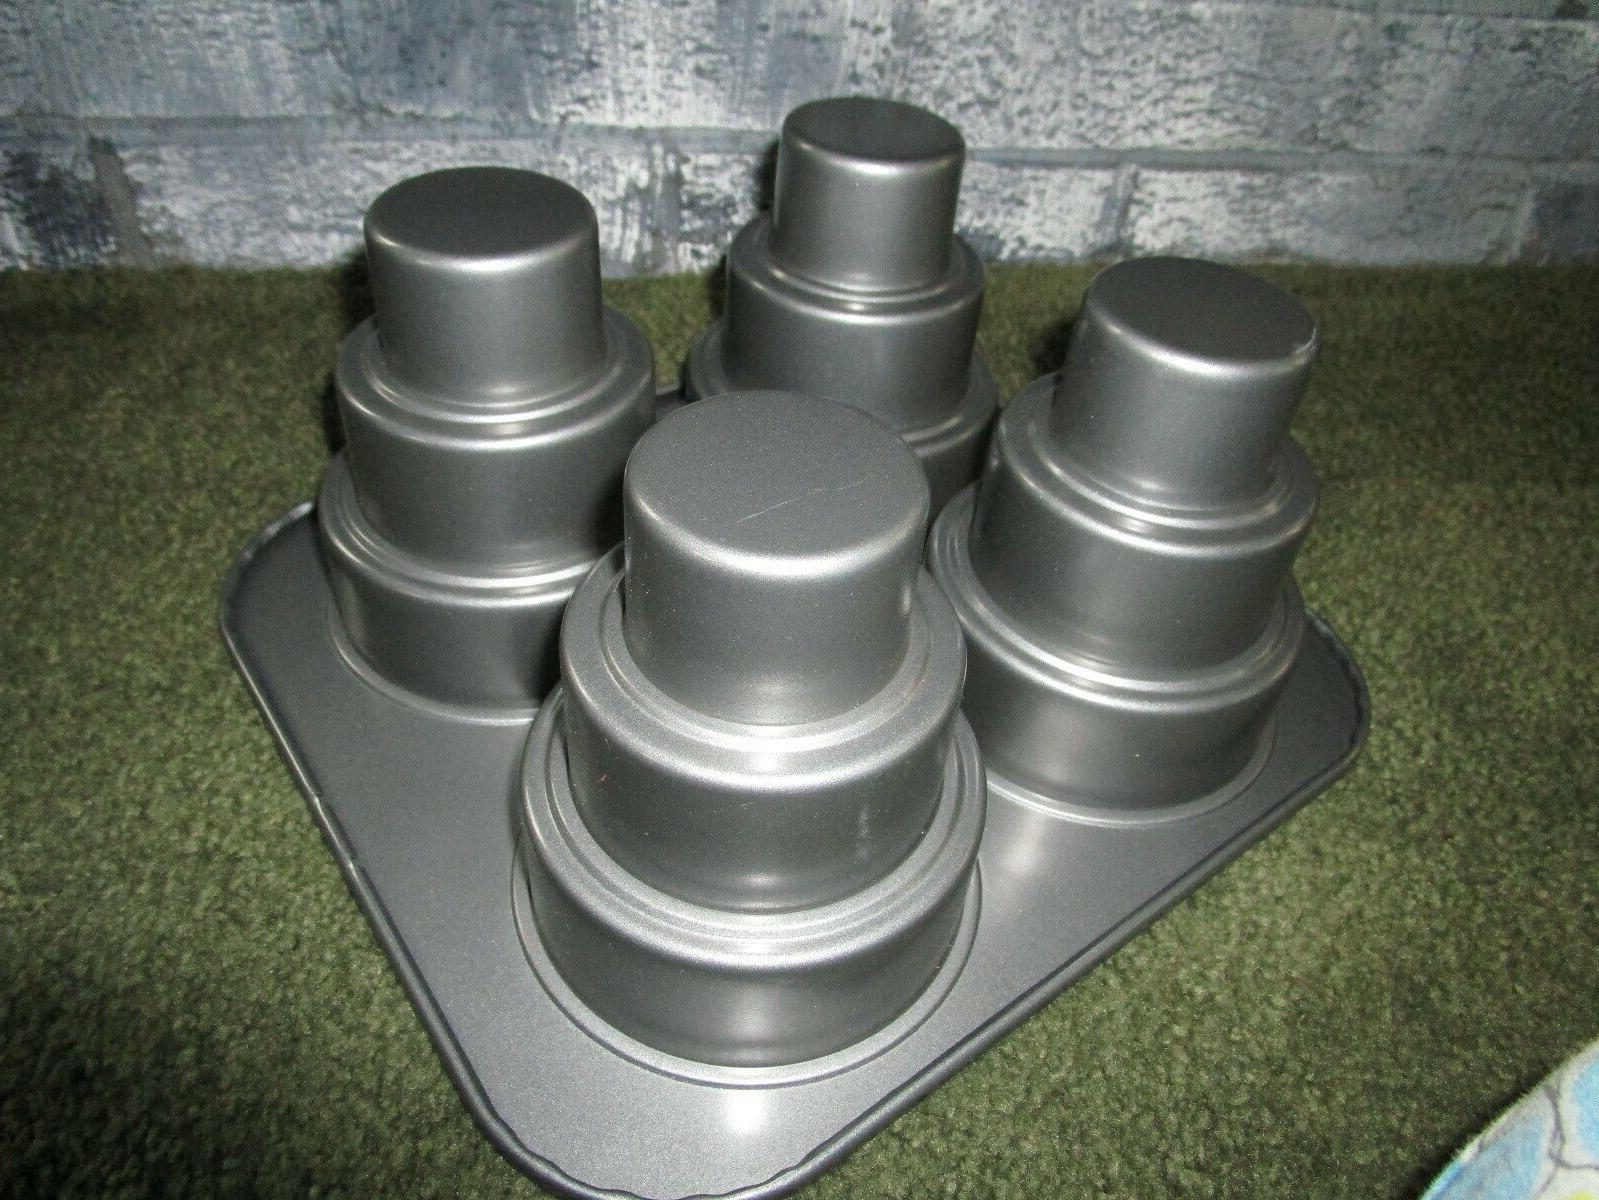 Chicago Metallic Cake Pan 4 Cavity, 10.6 x 4.5